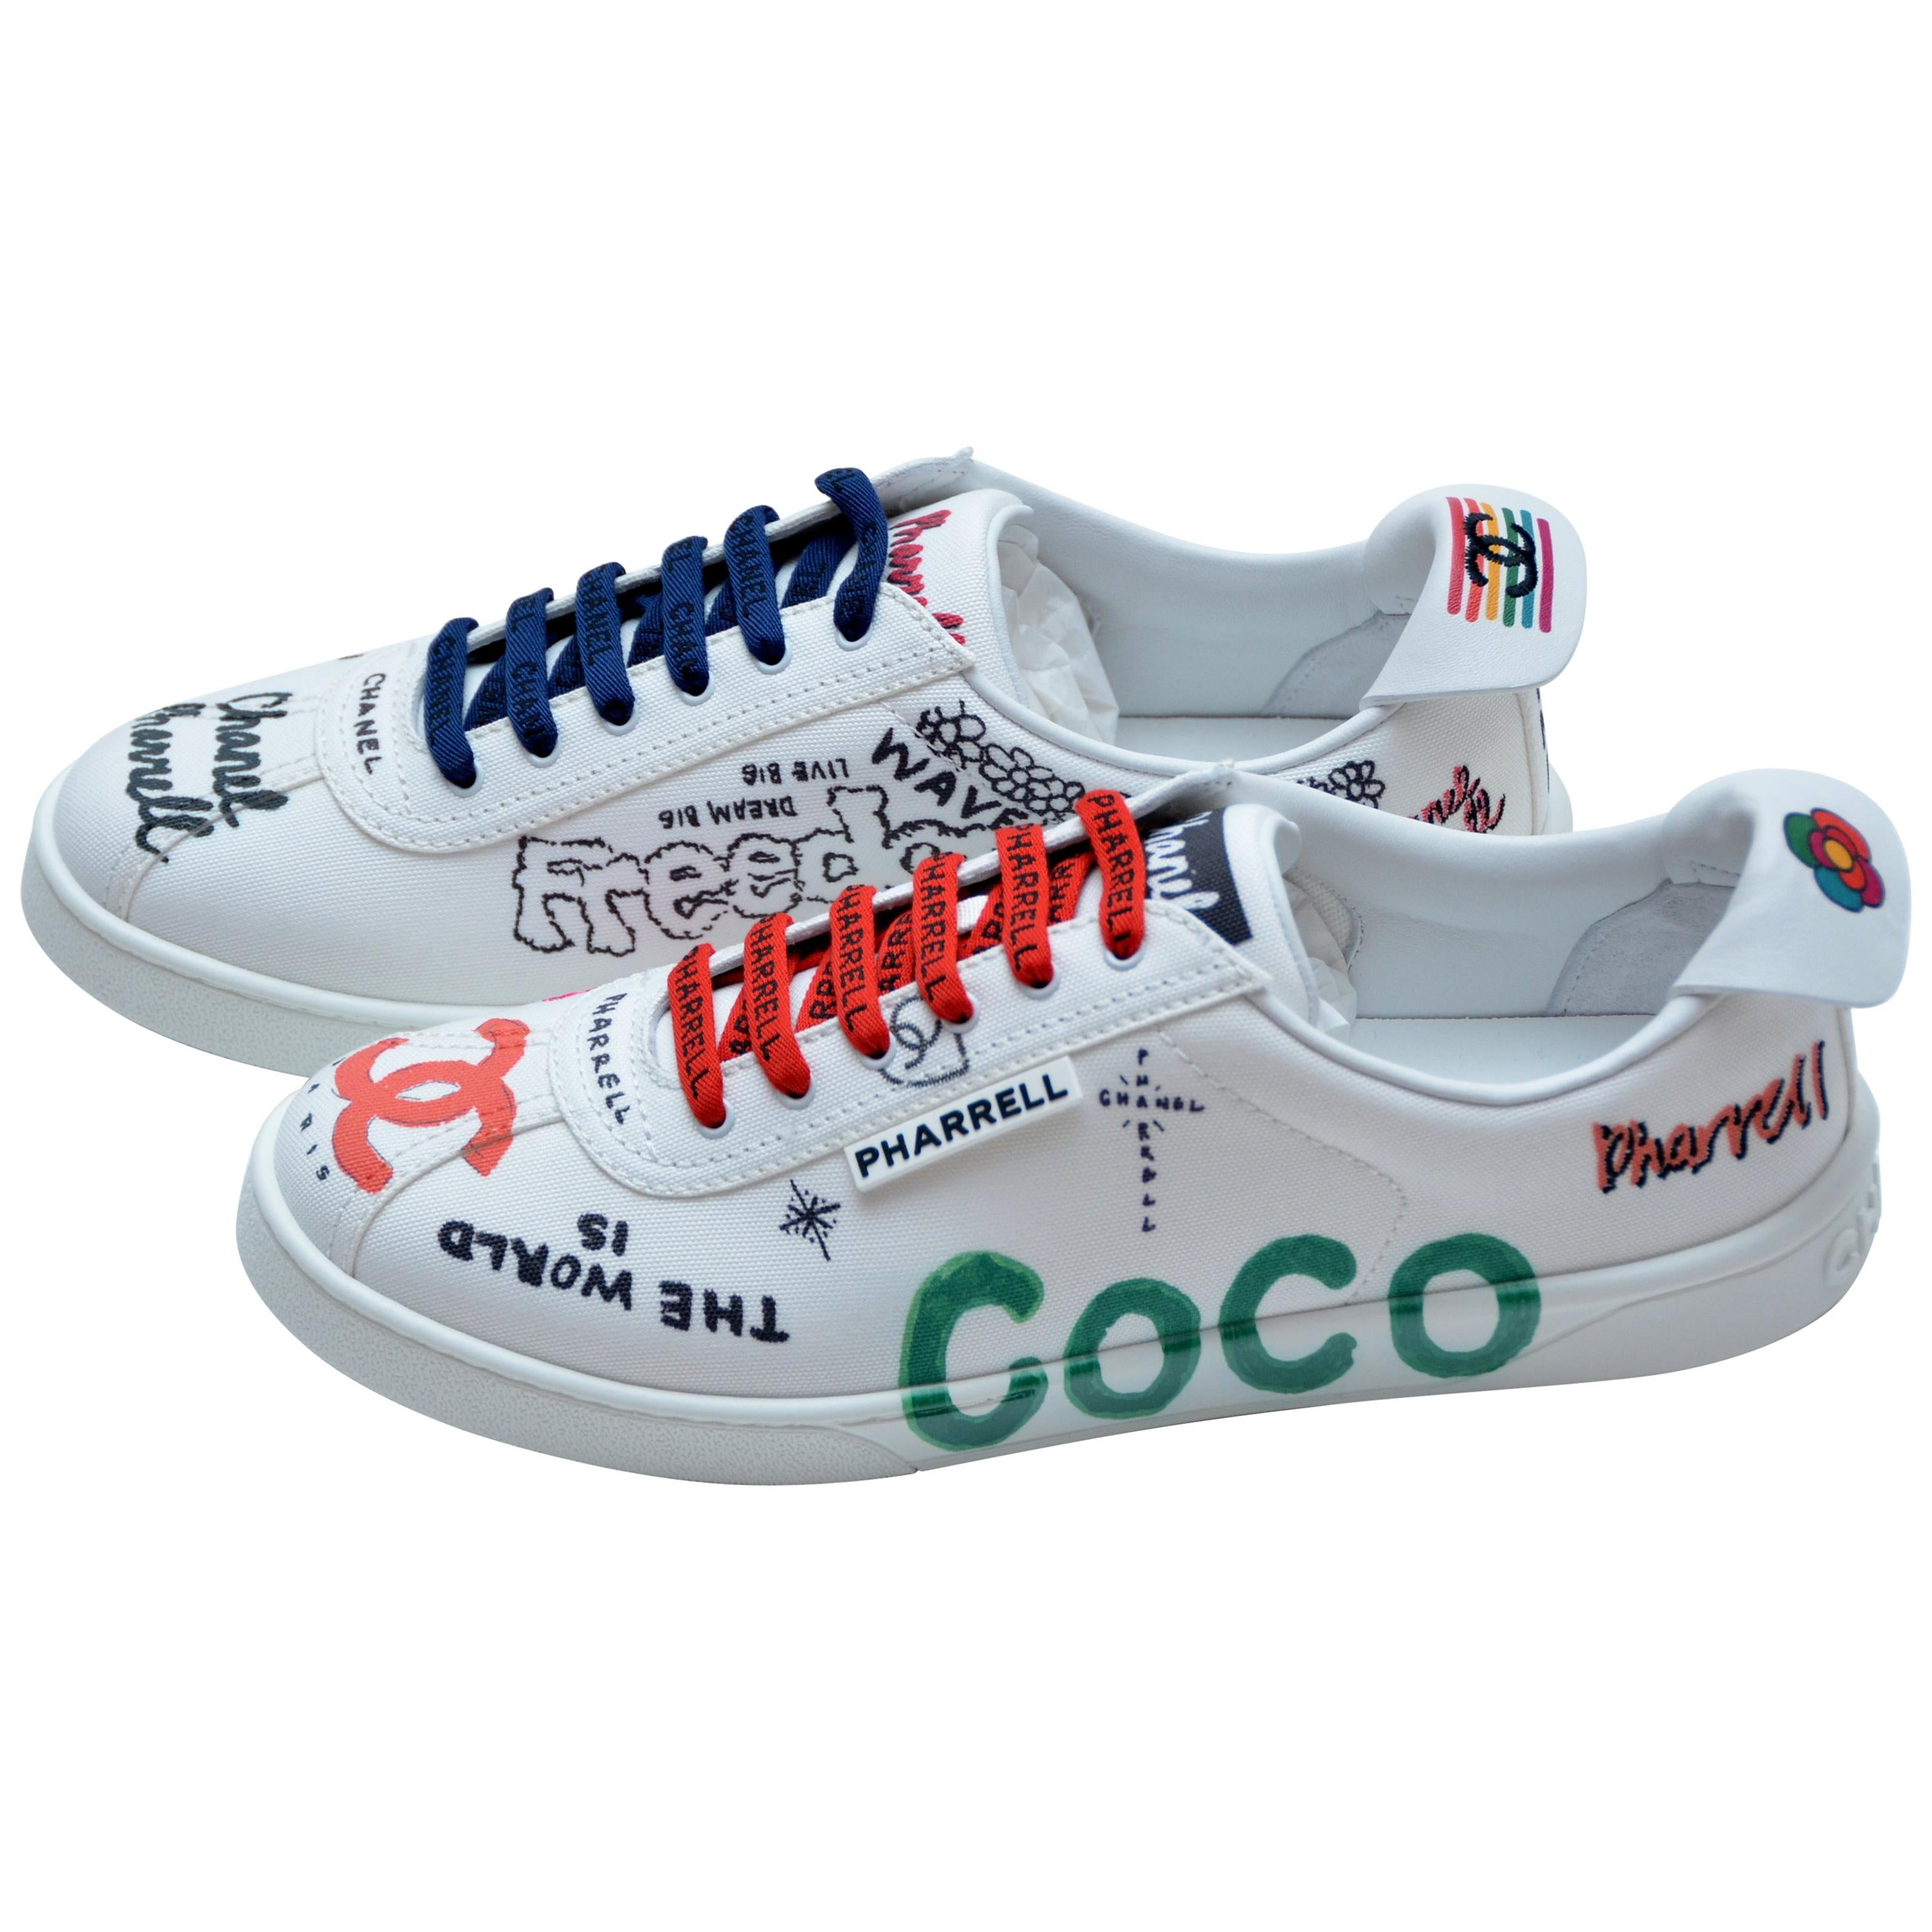 51dd0a3b0a4f54 Chanel x Pharrell Capsule Collection Canvas Sneakers Size 39.5 Woman NEW  For Sale at 1stdibs